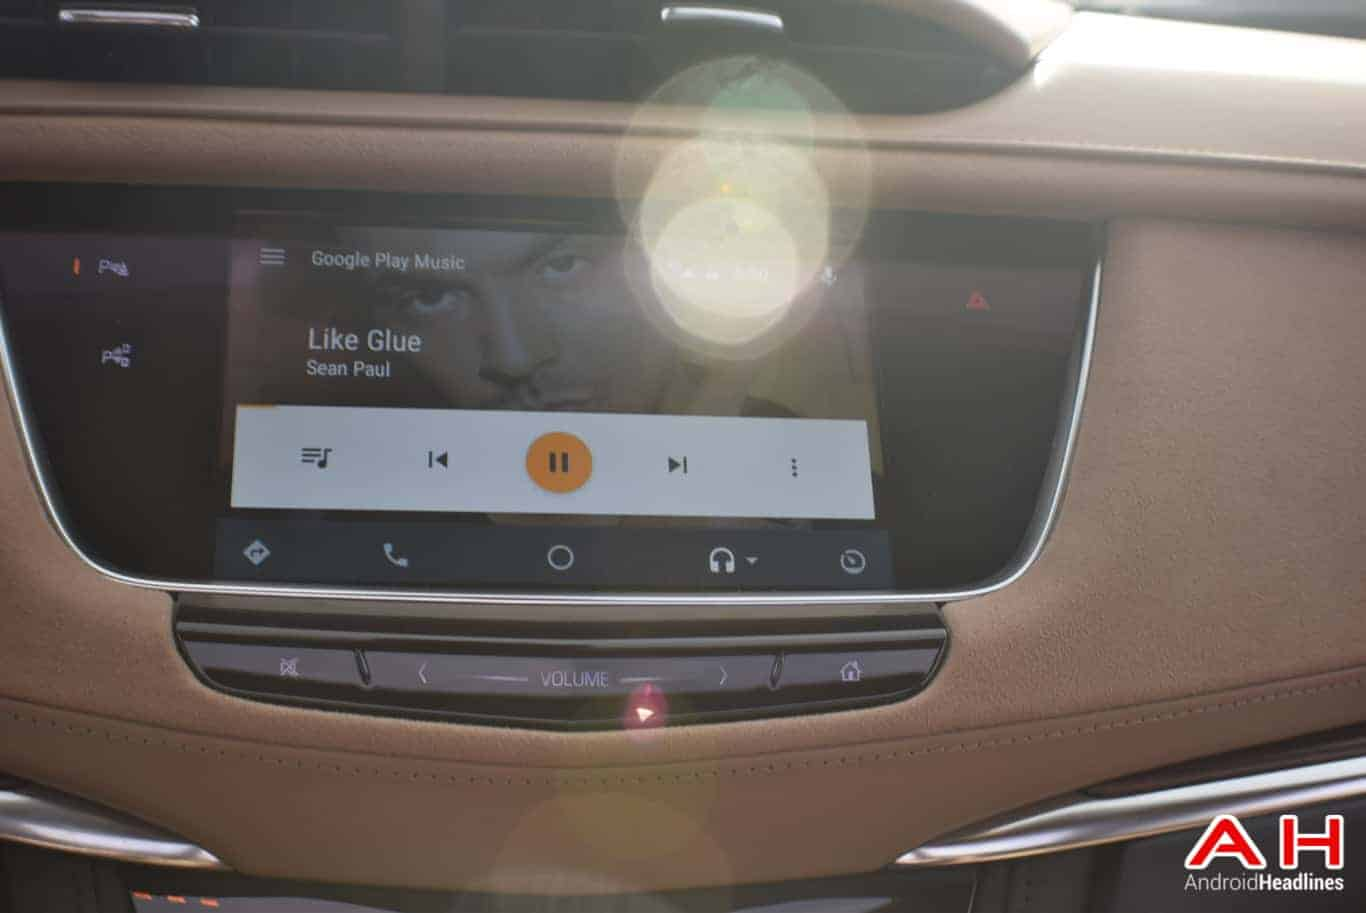 2017 Cadillac XT5 Android Auto Review AM AH 41